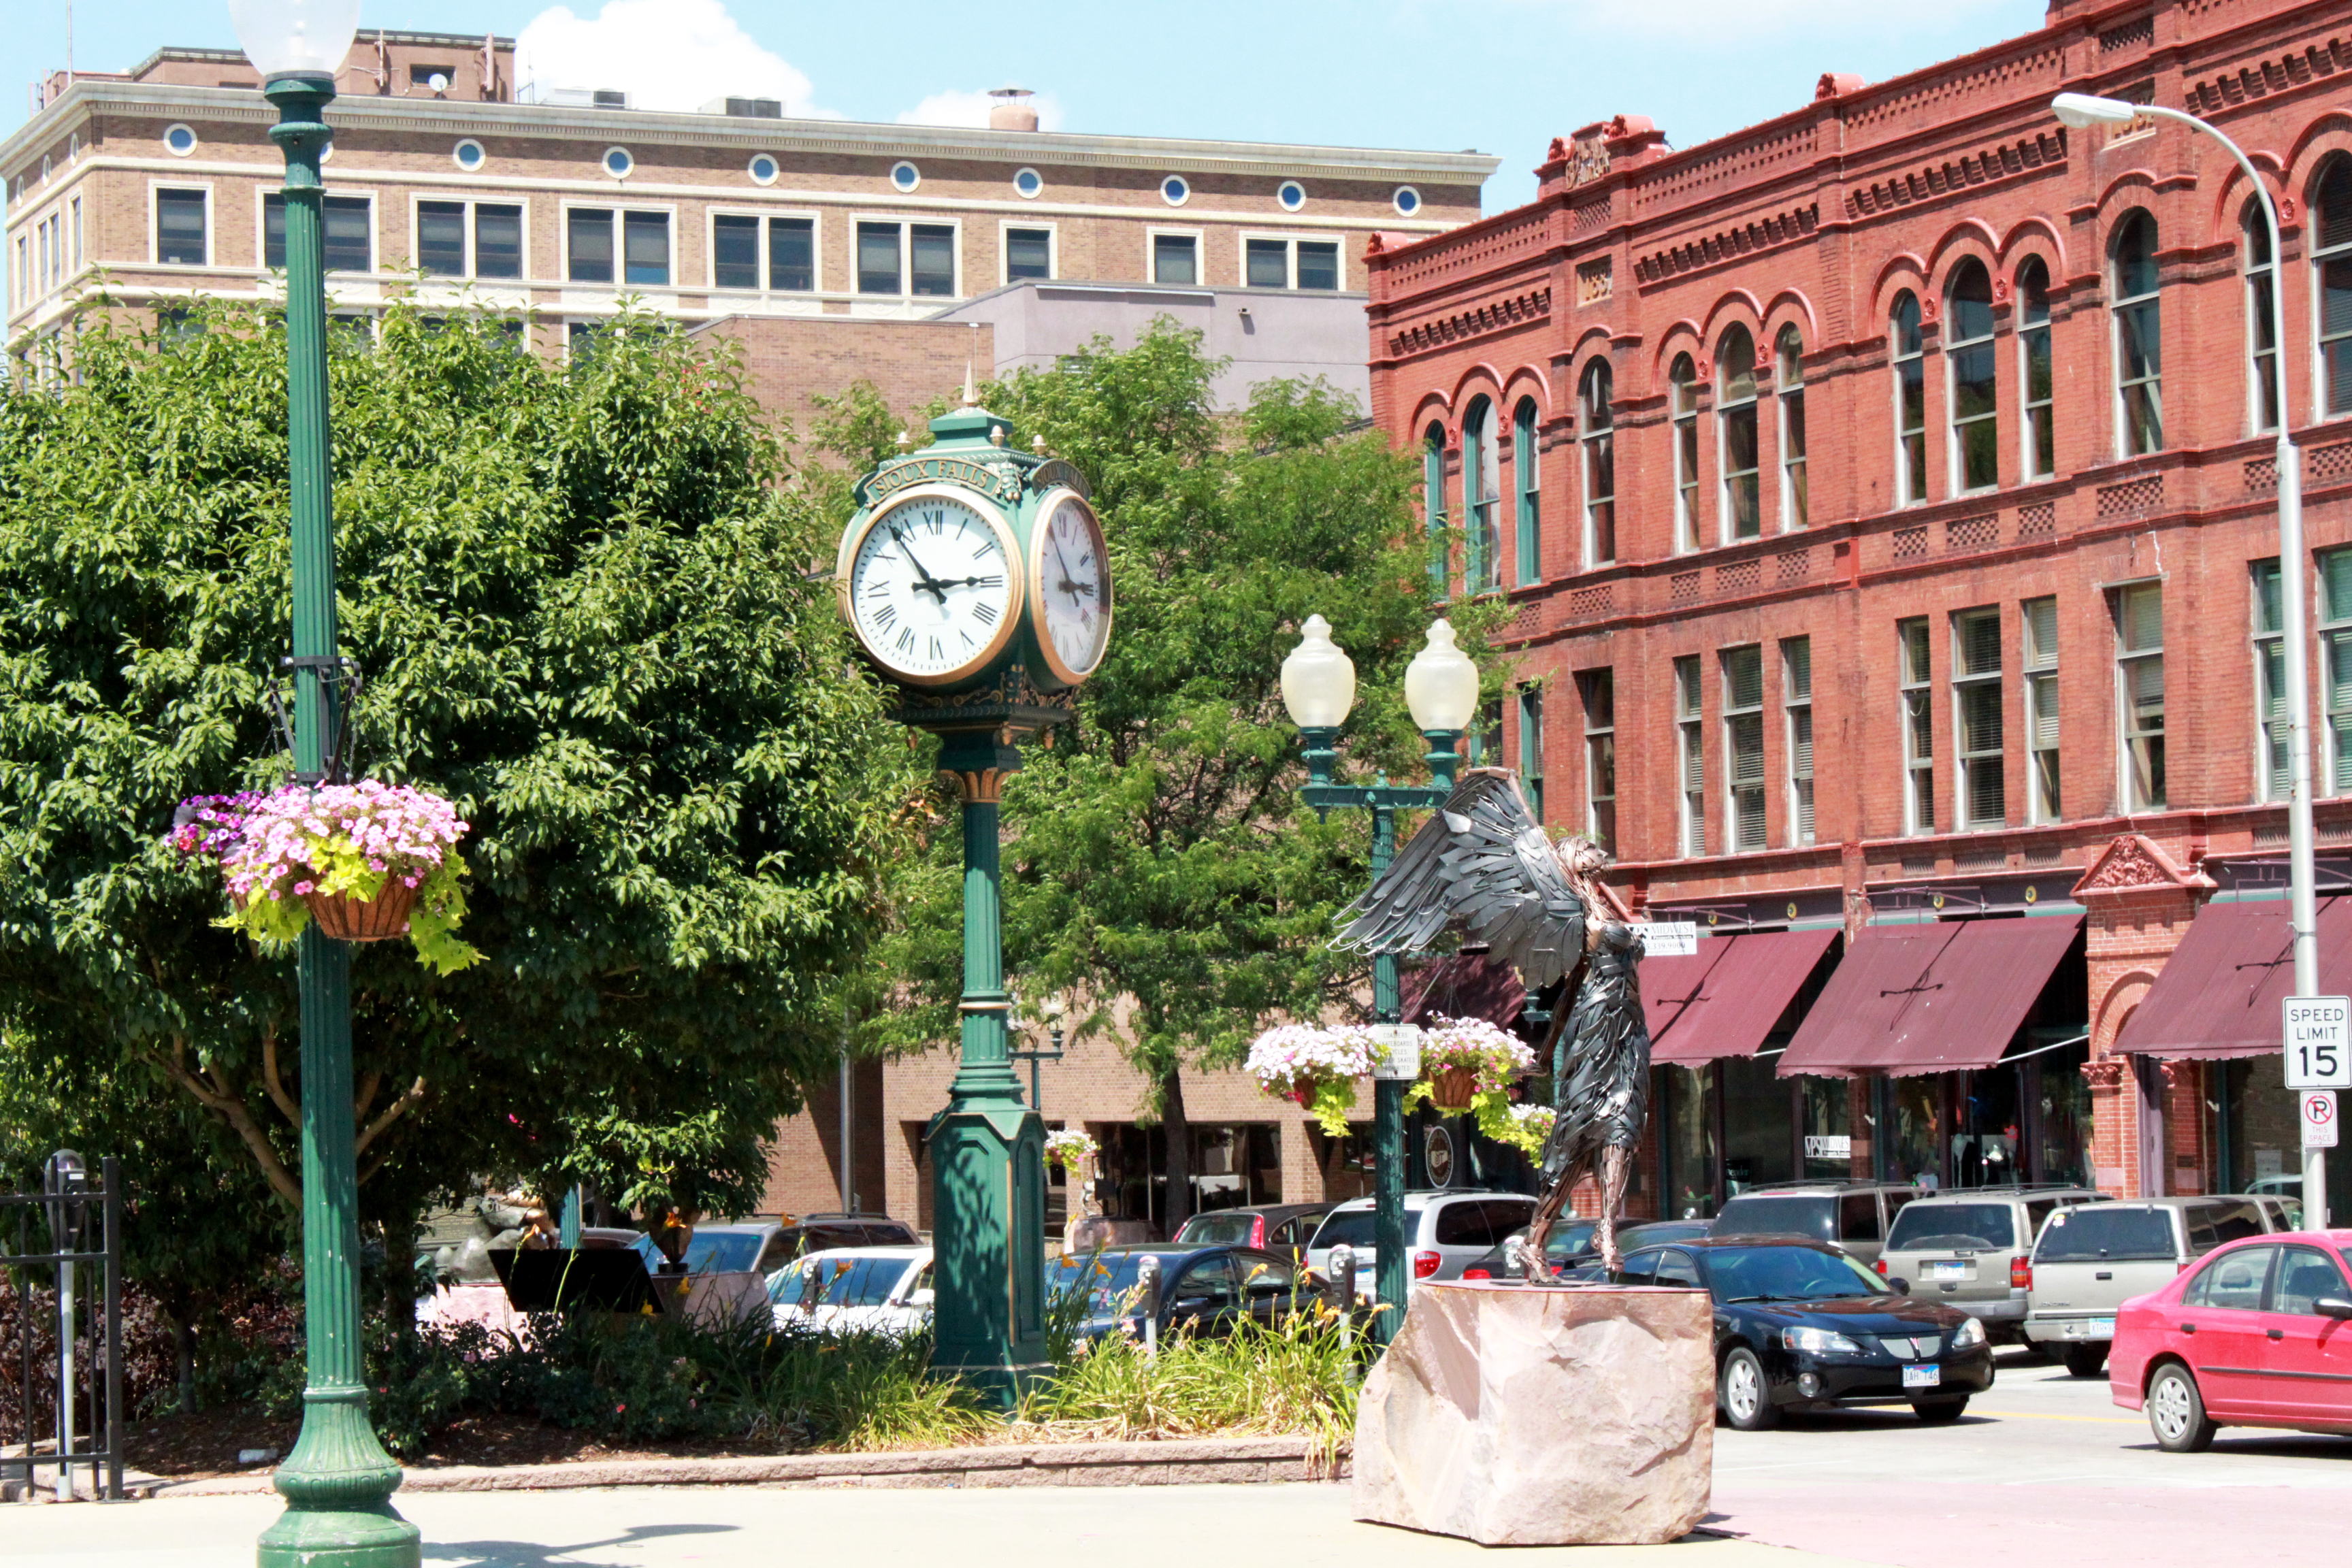 DowntownSiouxFalls.PhillipsAve.CVB.JPG